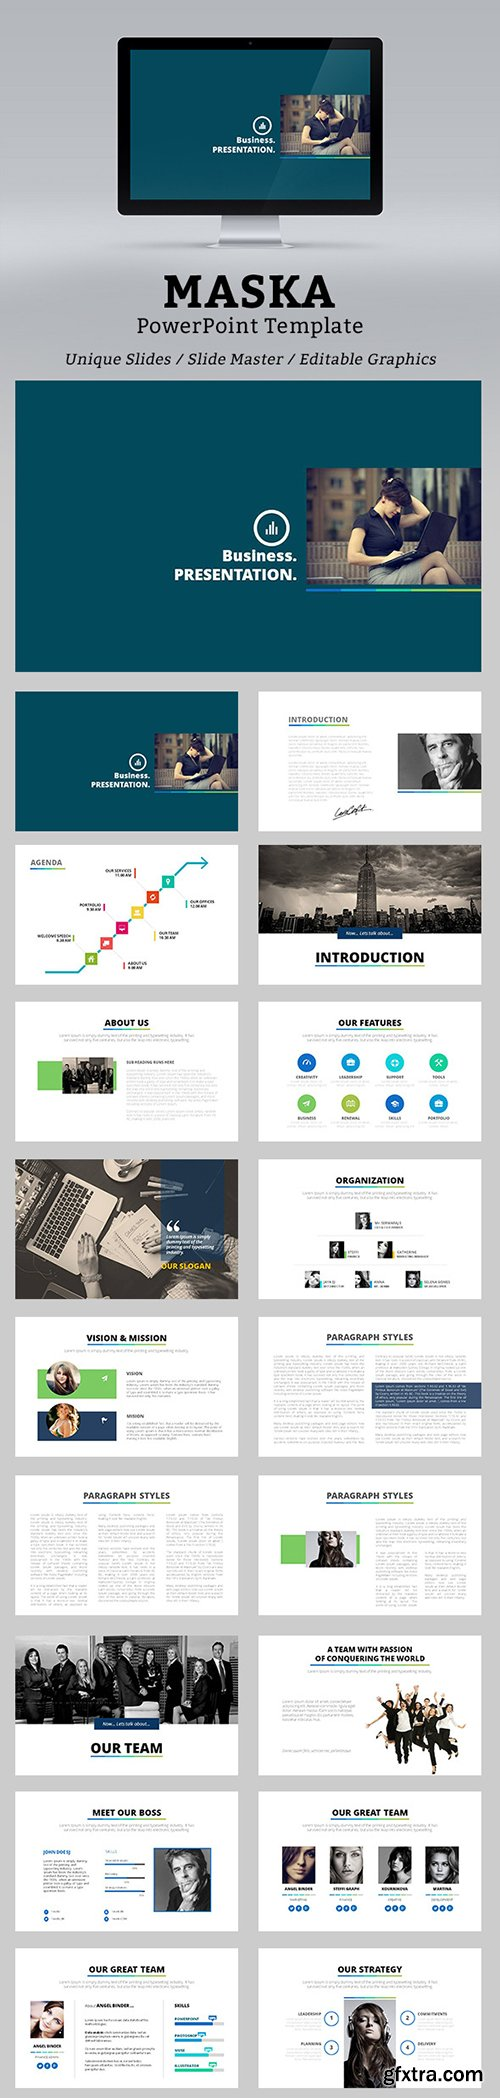 Graphicriver - Maska PowerPoint Template 12957997